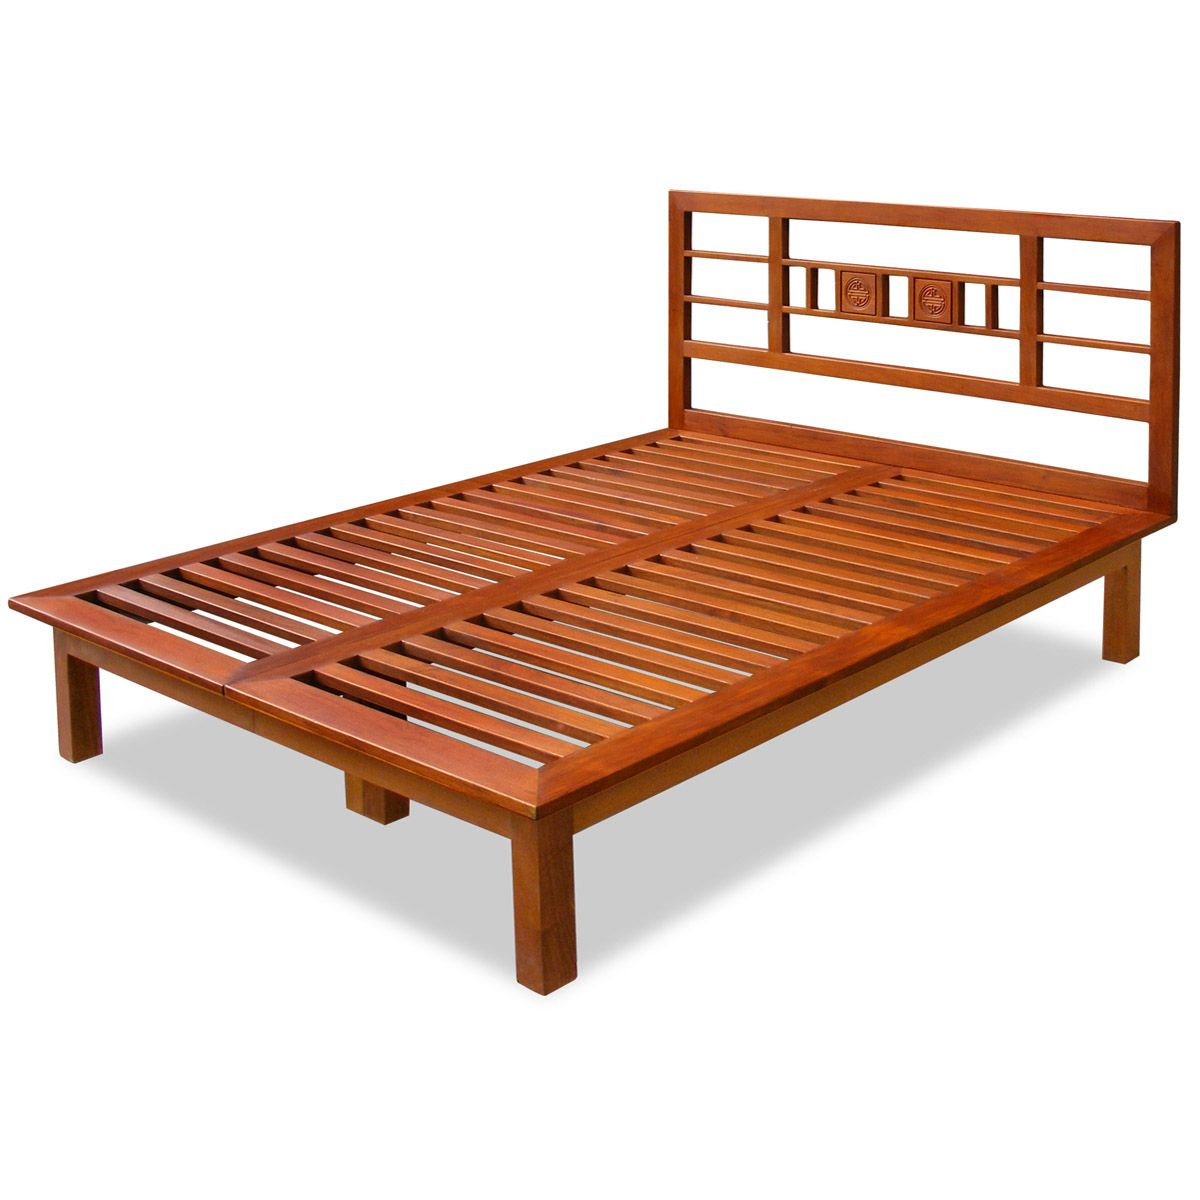 Rosewood Tai Ji Queen Bed Influenced by Japanese Tatami